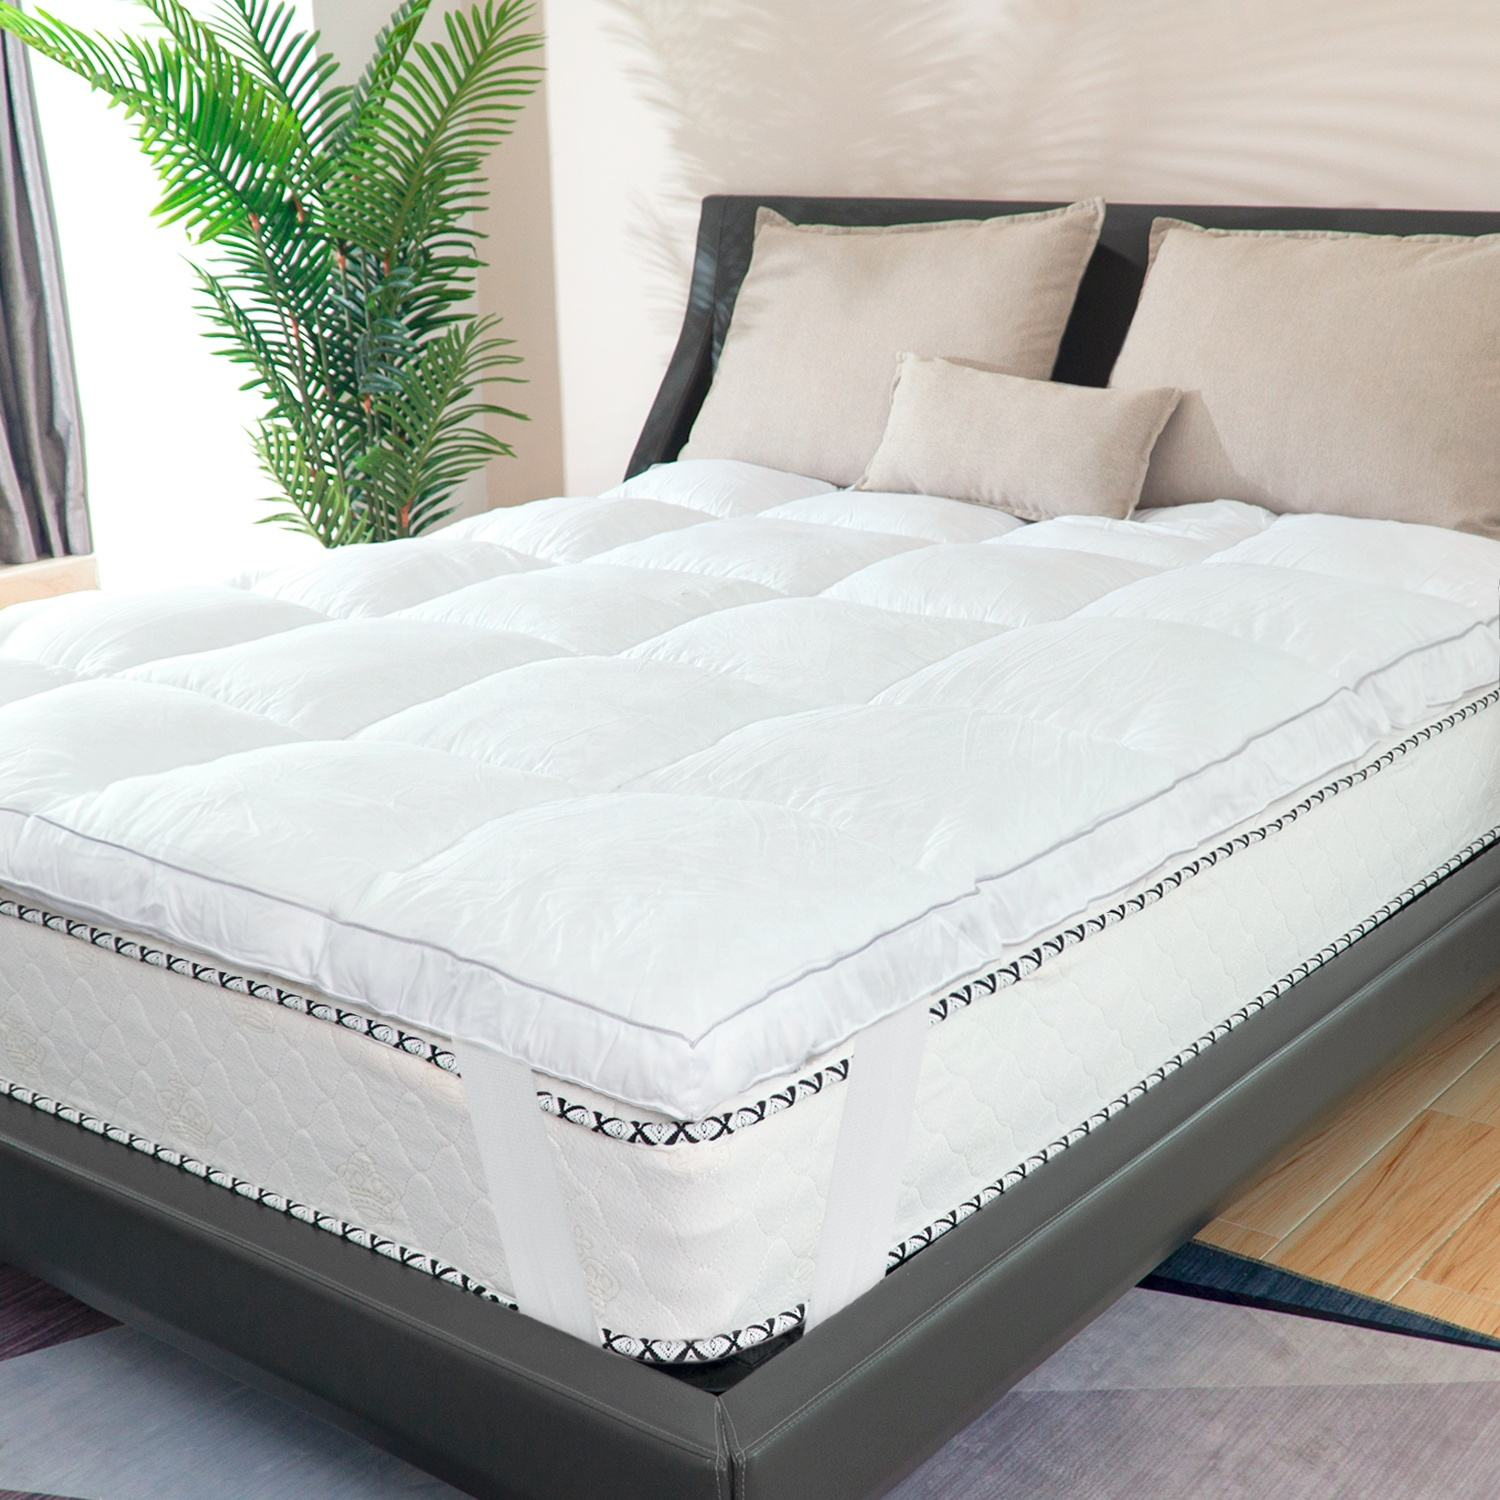 Euro Queen King Size Compress Pocket Spring Memory Foam Bed Mattress Cotton OEM Knit Plush Wool Fabric Packing Furniture Organic